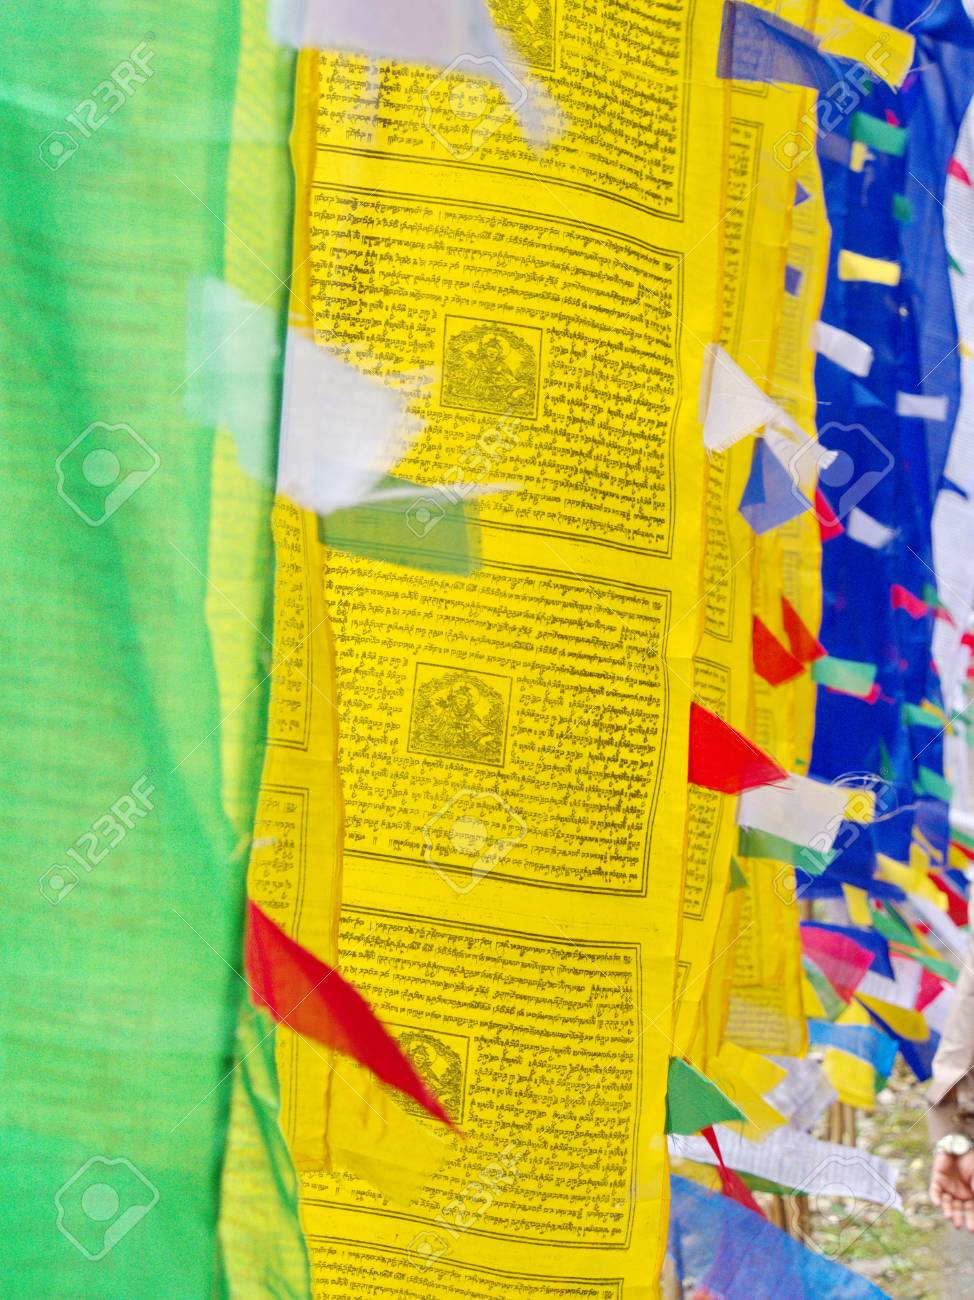 Tibetan Prayer Flag for Faith, peace, wisdom, compassion, and